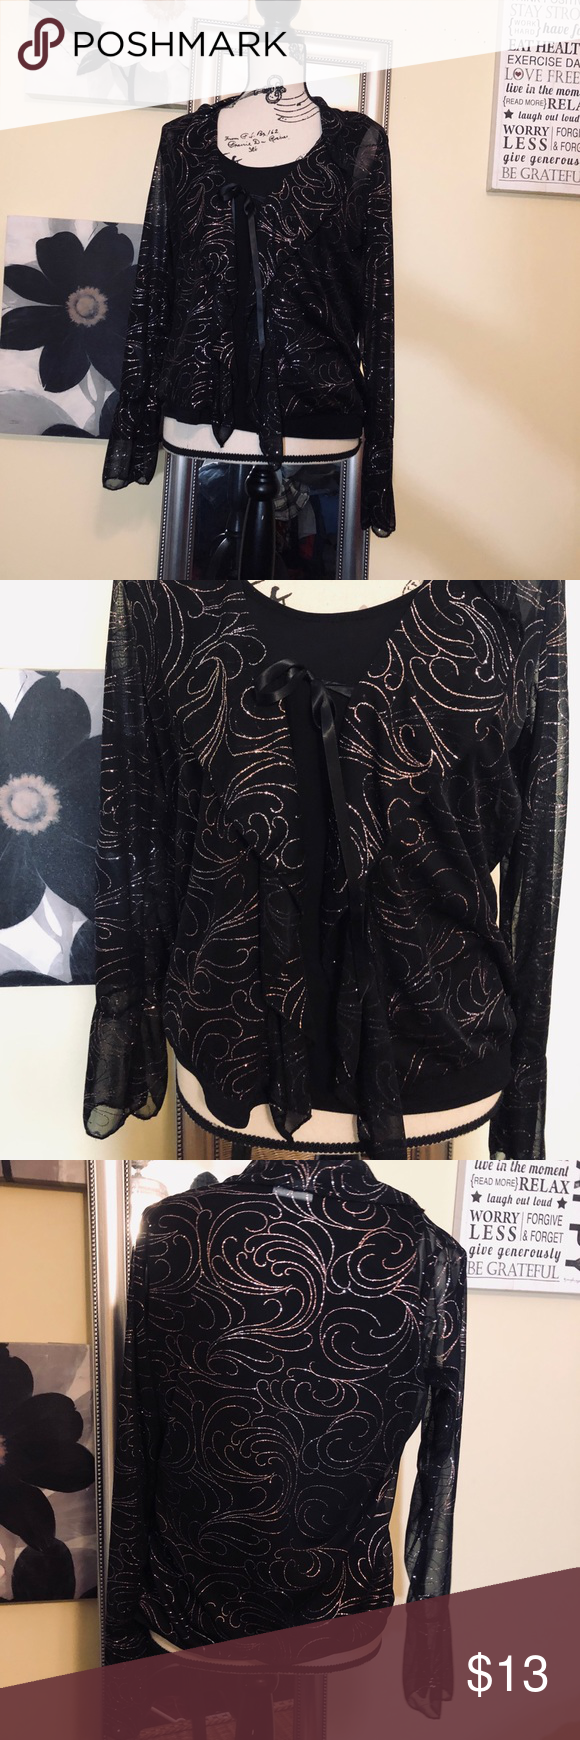 Sparkling black blouse | Black blouse, Fashion bug, Fashion